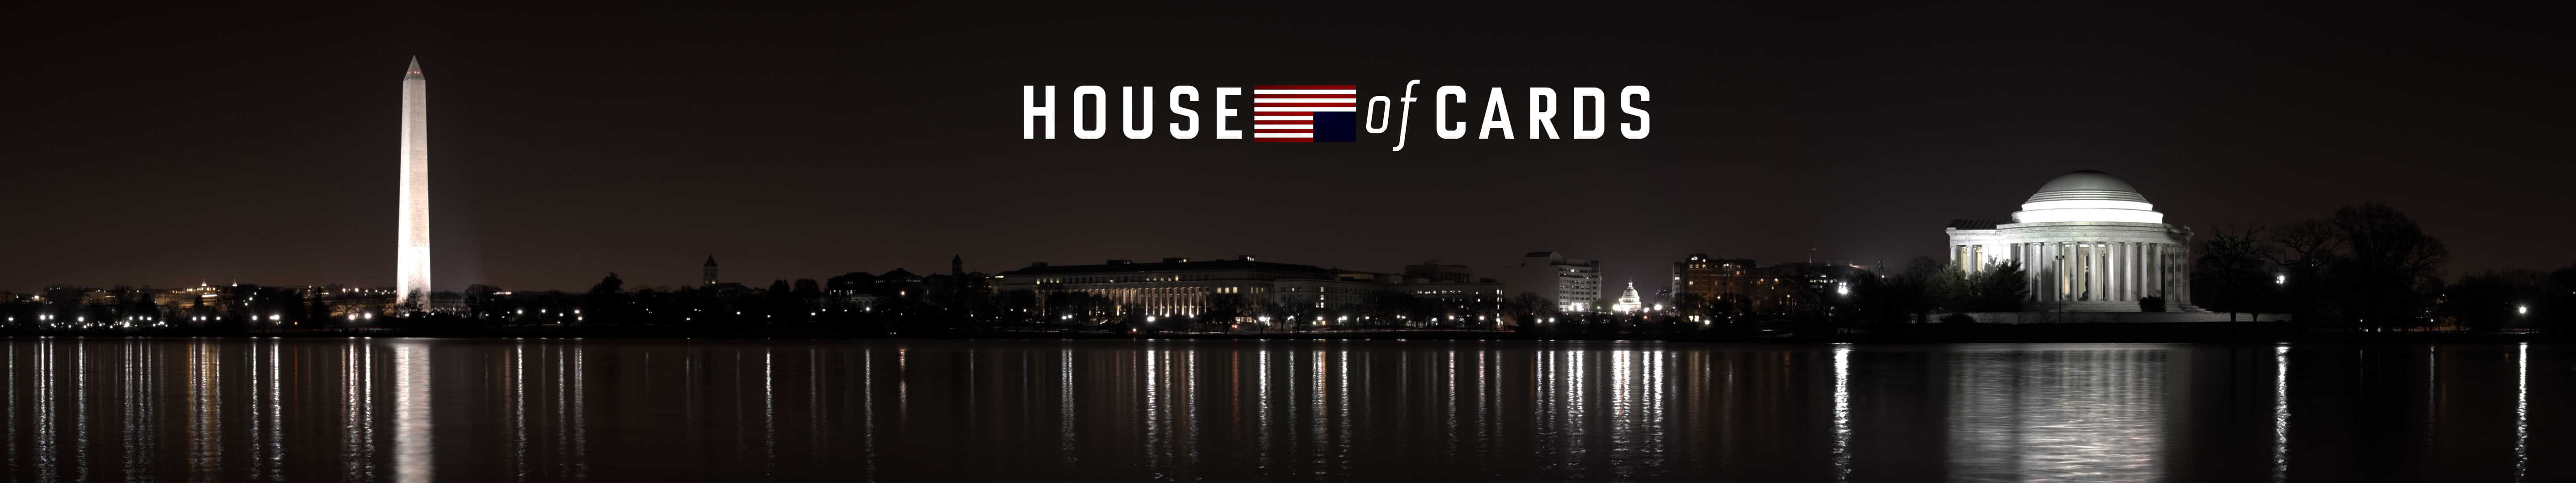 house of cards washington dc triple monitor wallpaper